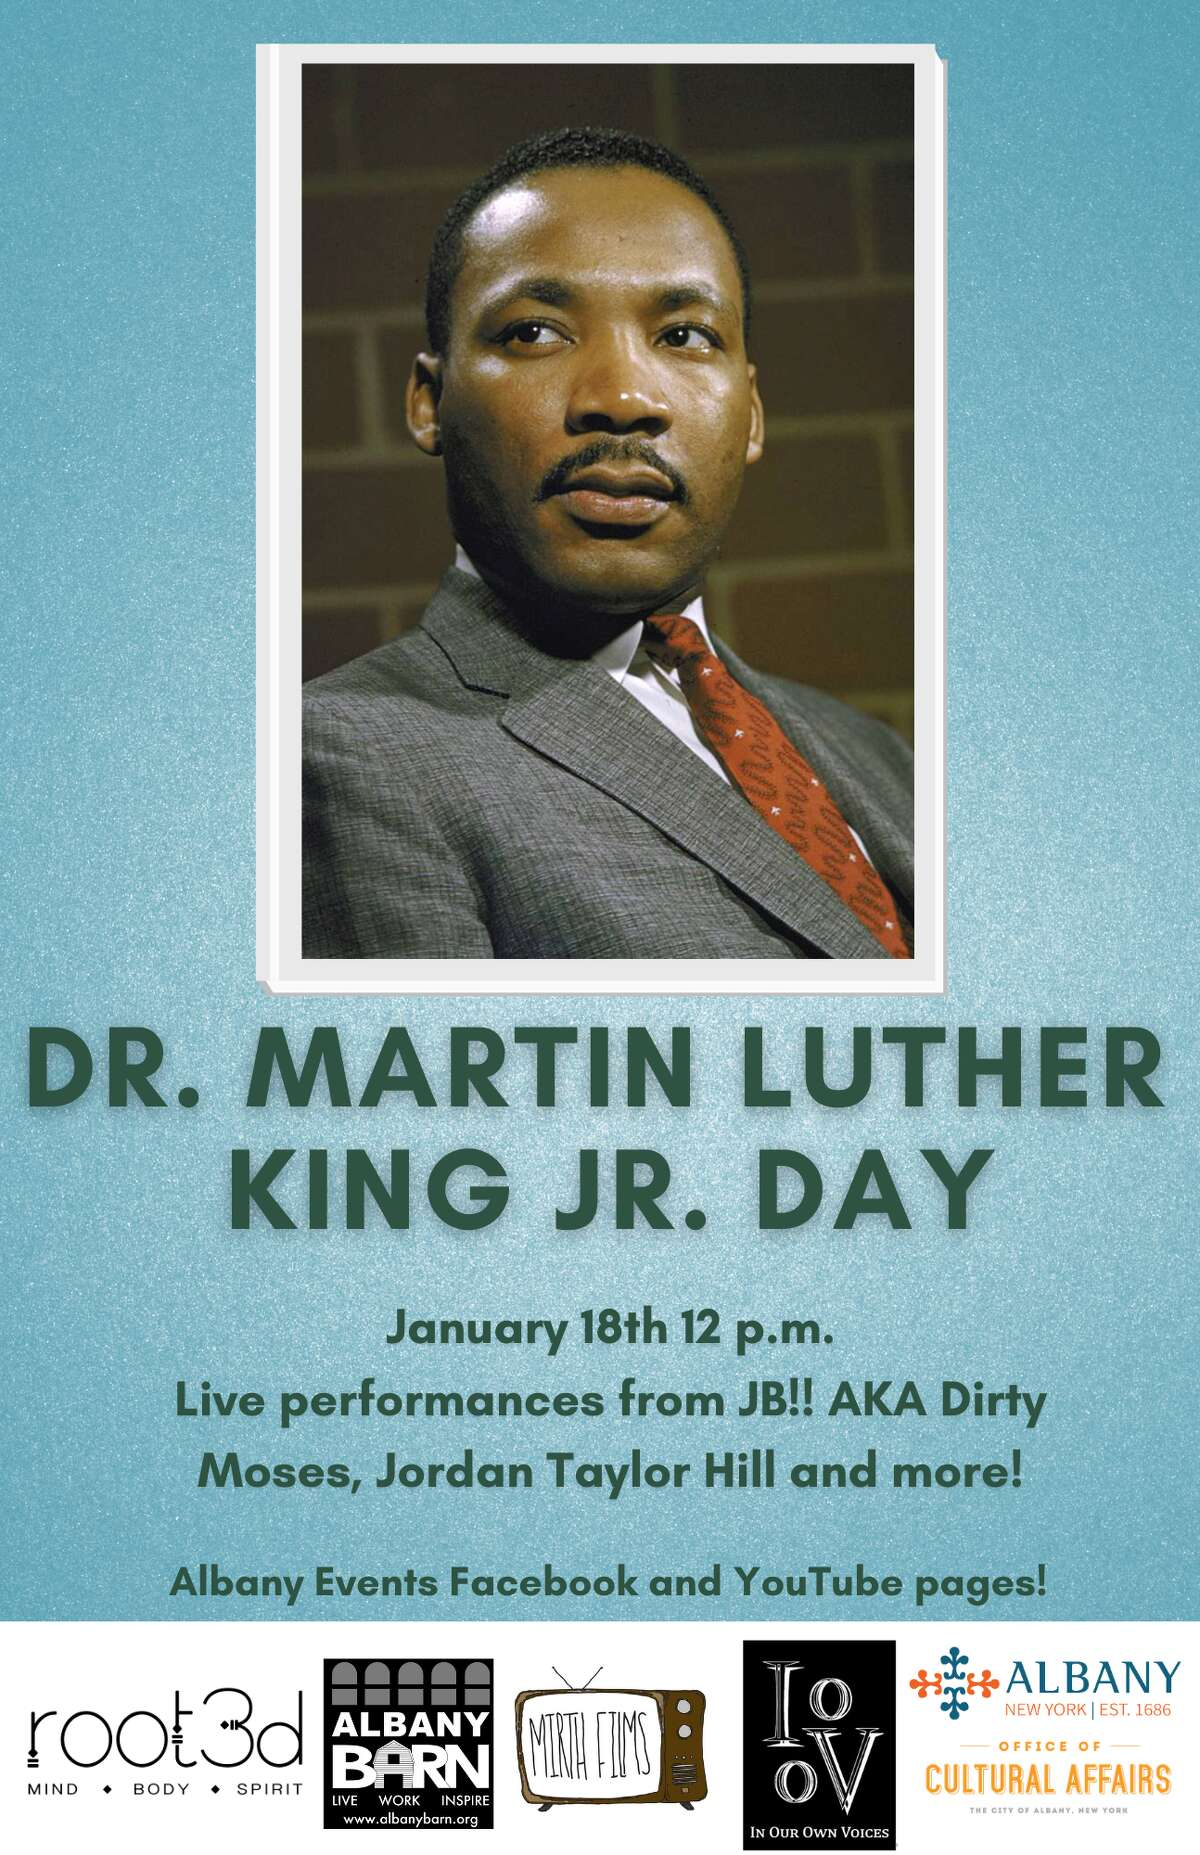 Monday event in Albany celebrates the birthday of Martin Luther King Jr.